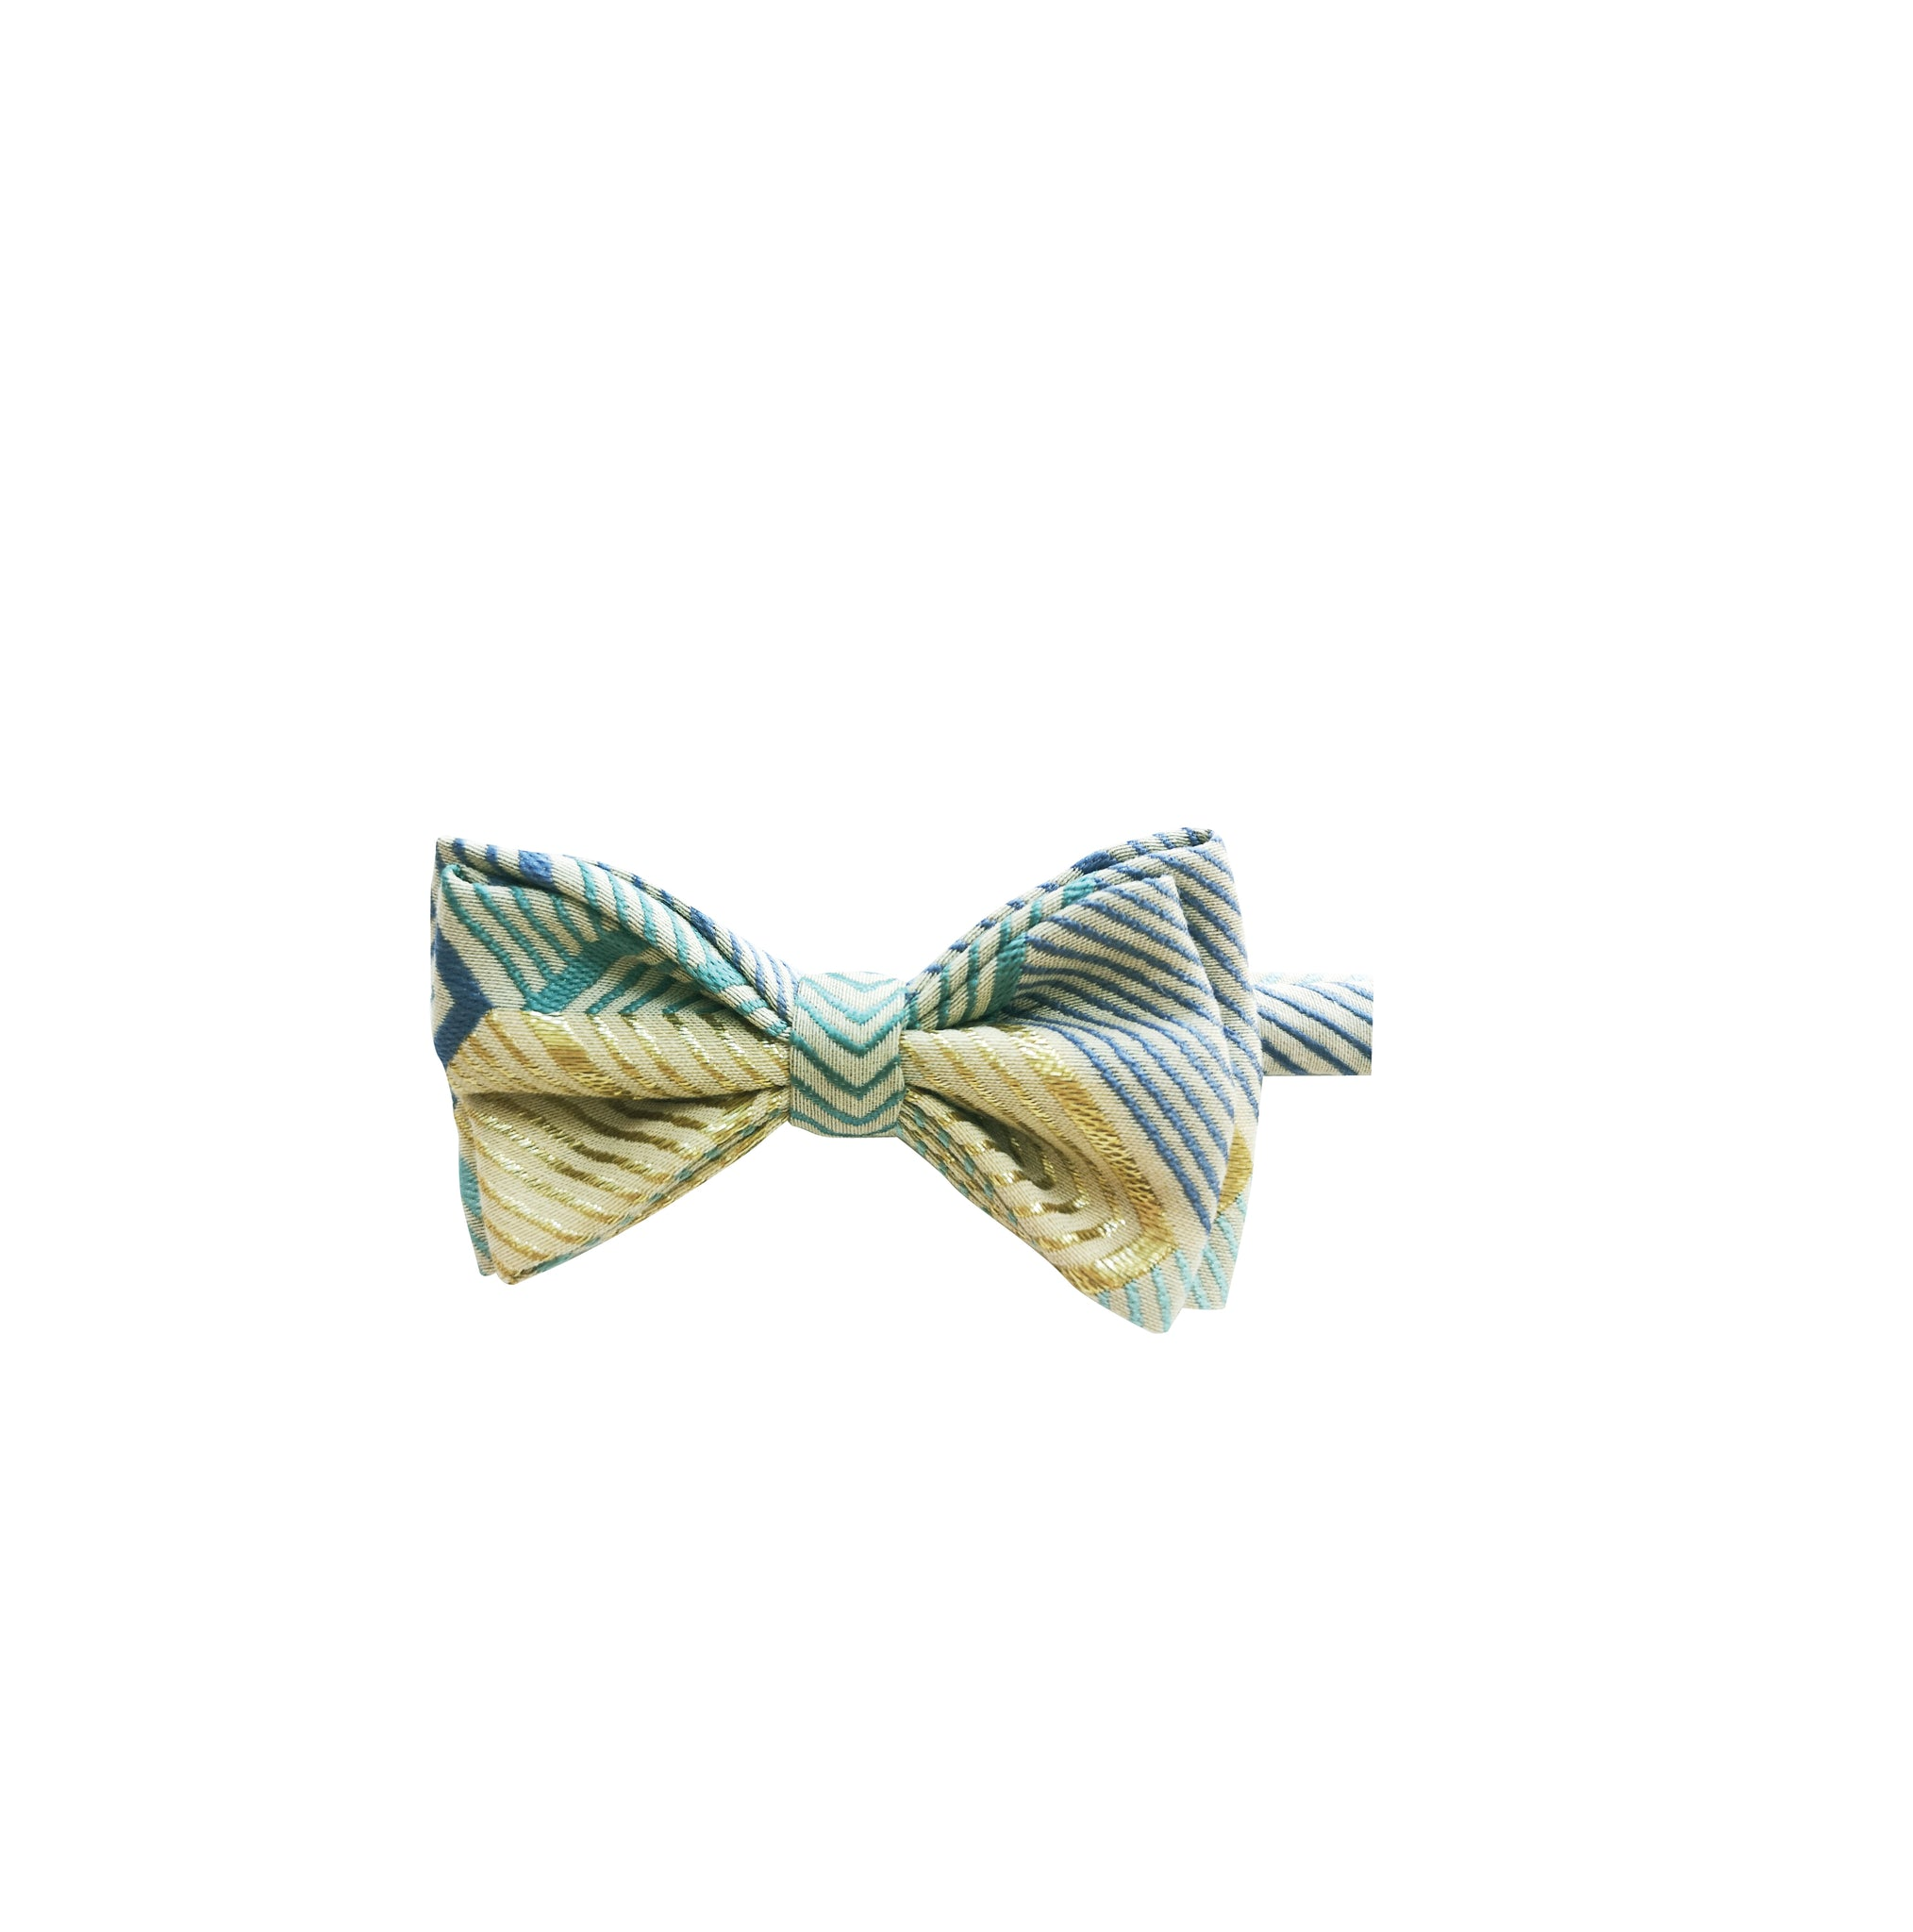 THE AXEL BOWTIE